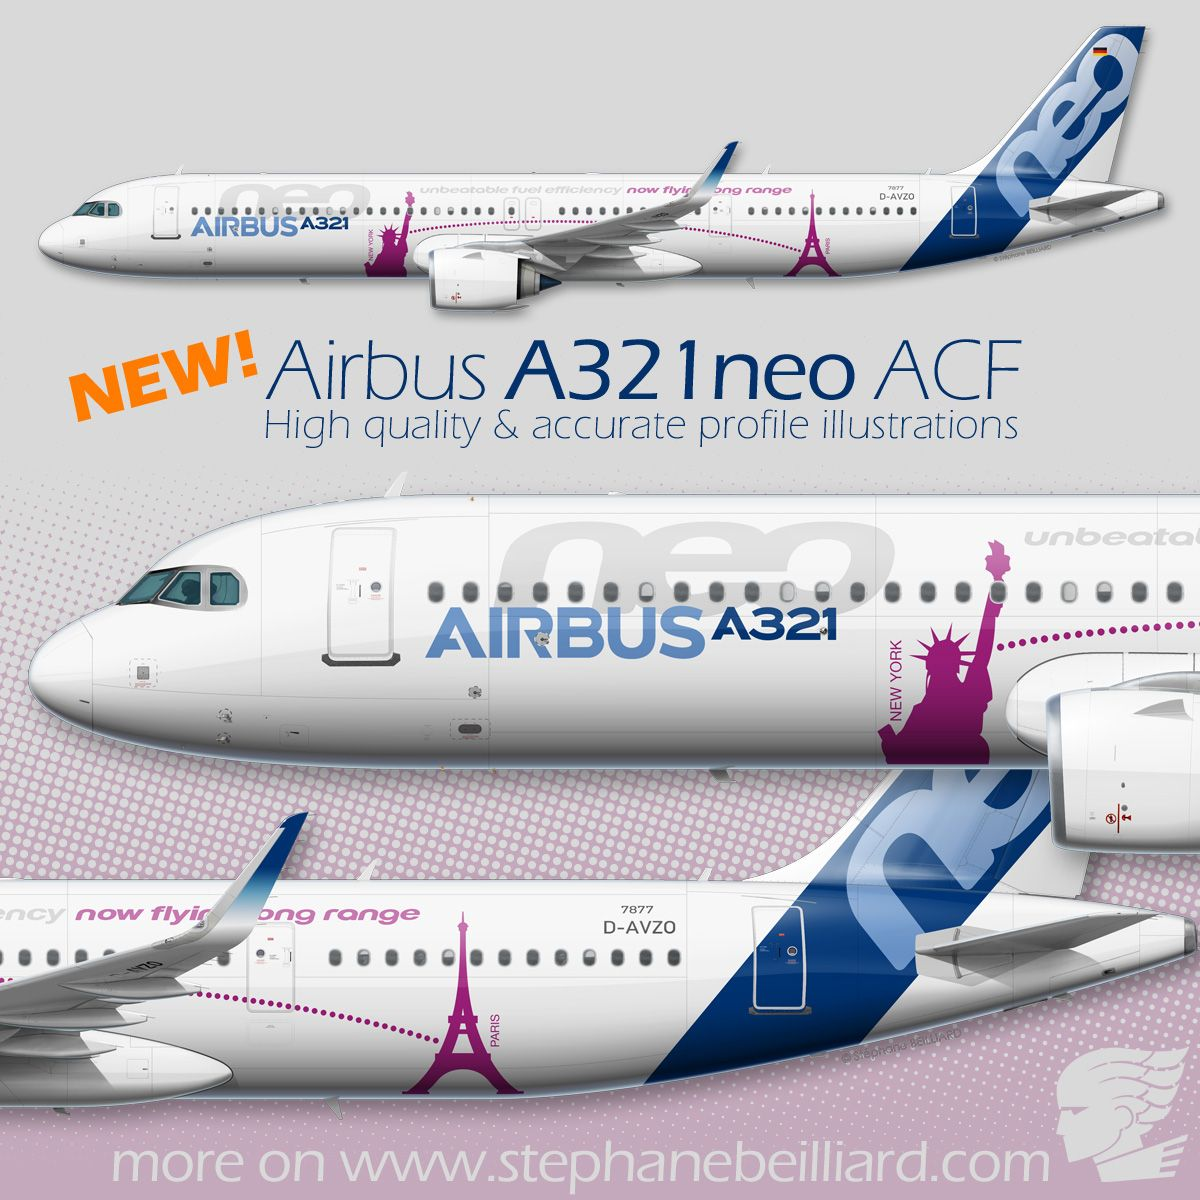 New A321neo Acf Profile Illustration On My Website